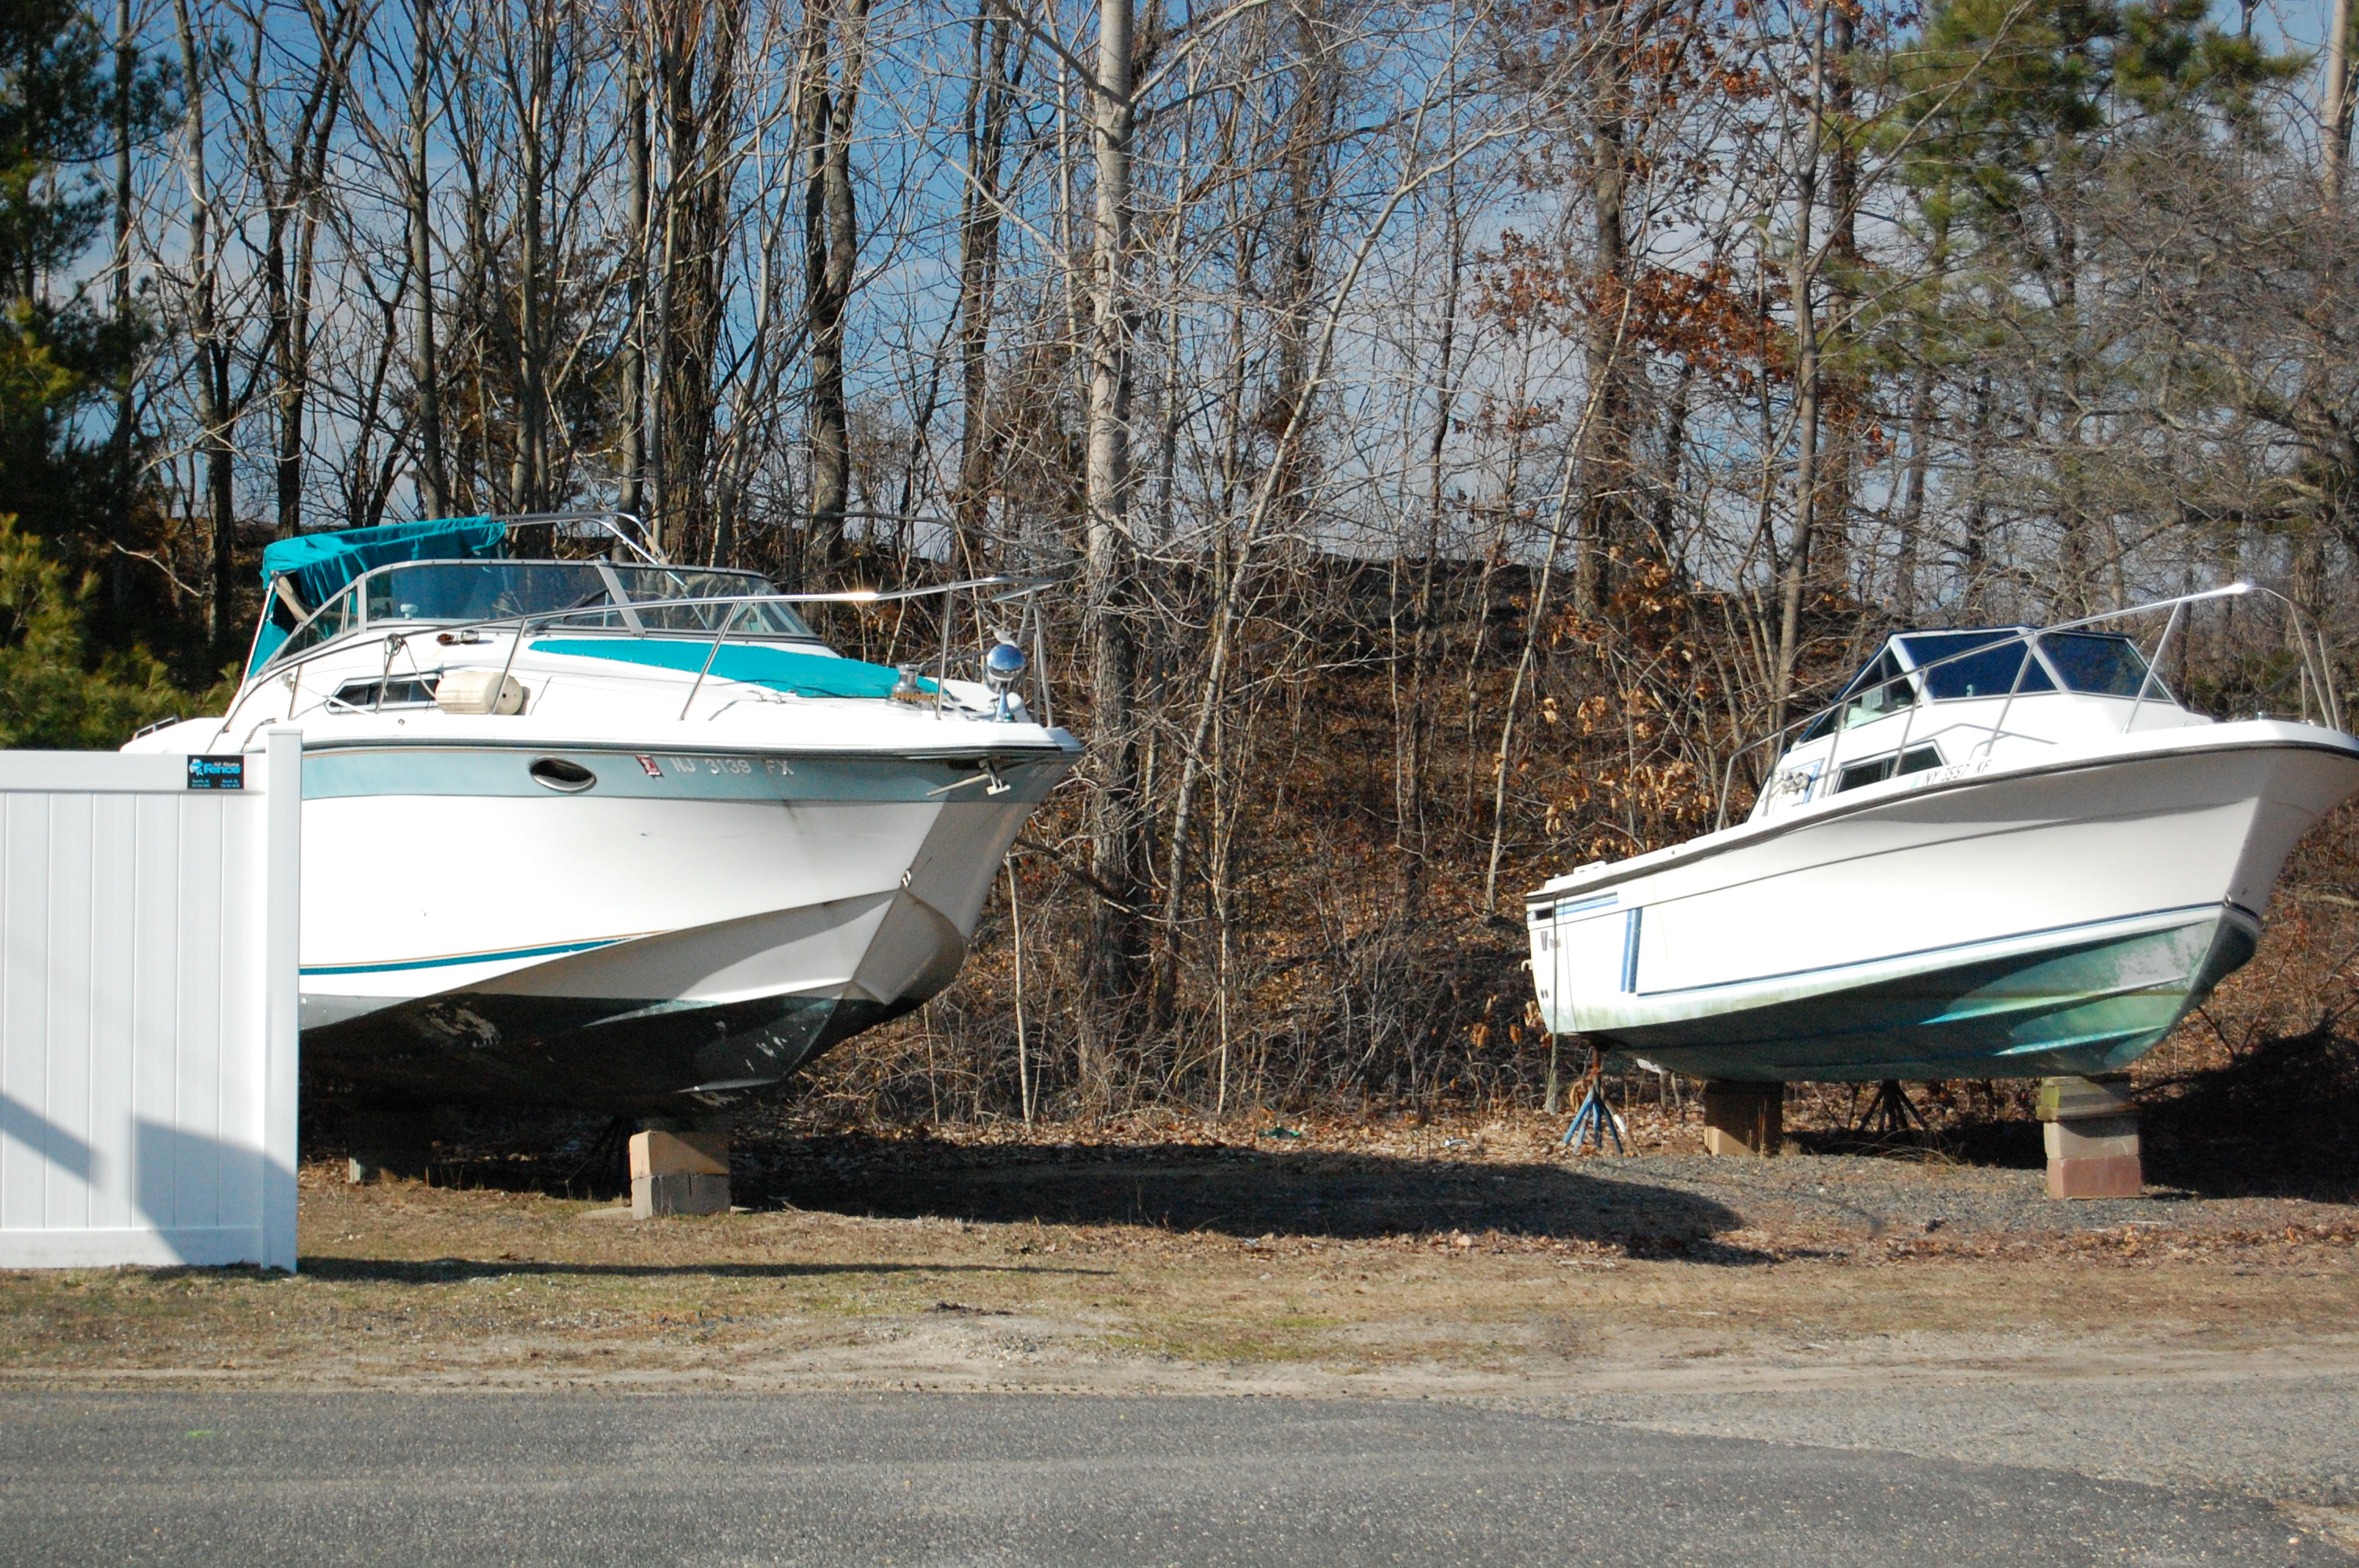 Boats behind Brick Township's municipal building, March 9, 2016. (Photo: Daniel Nee)